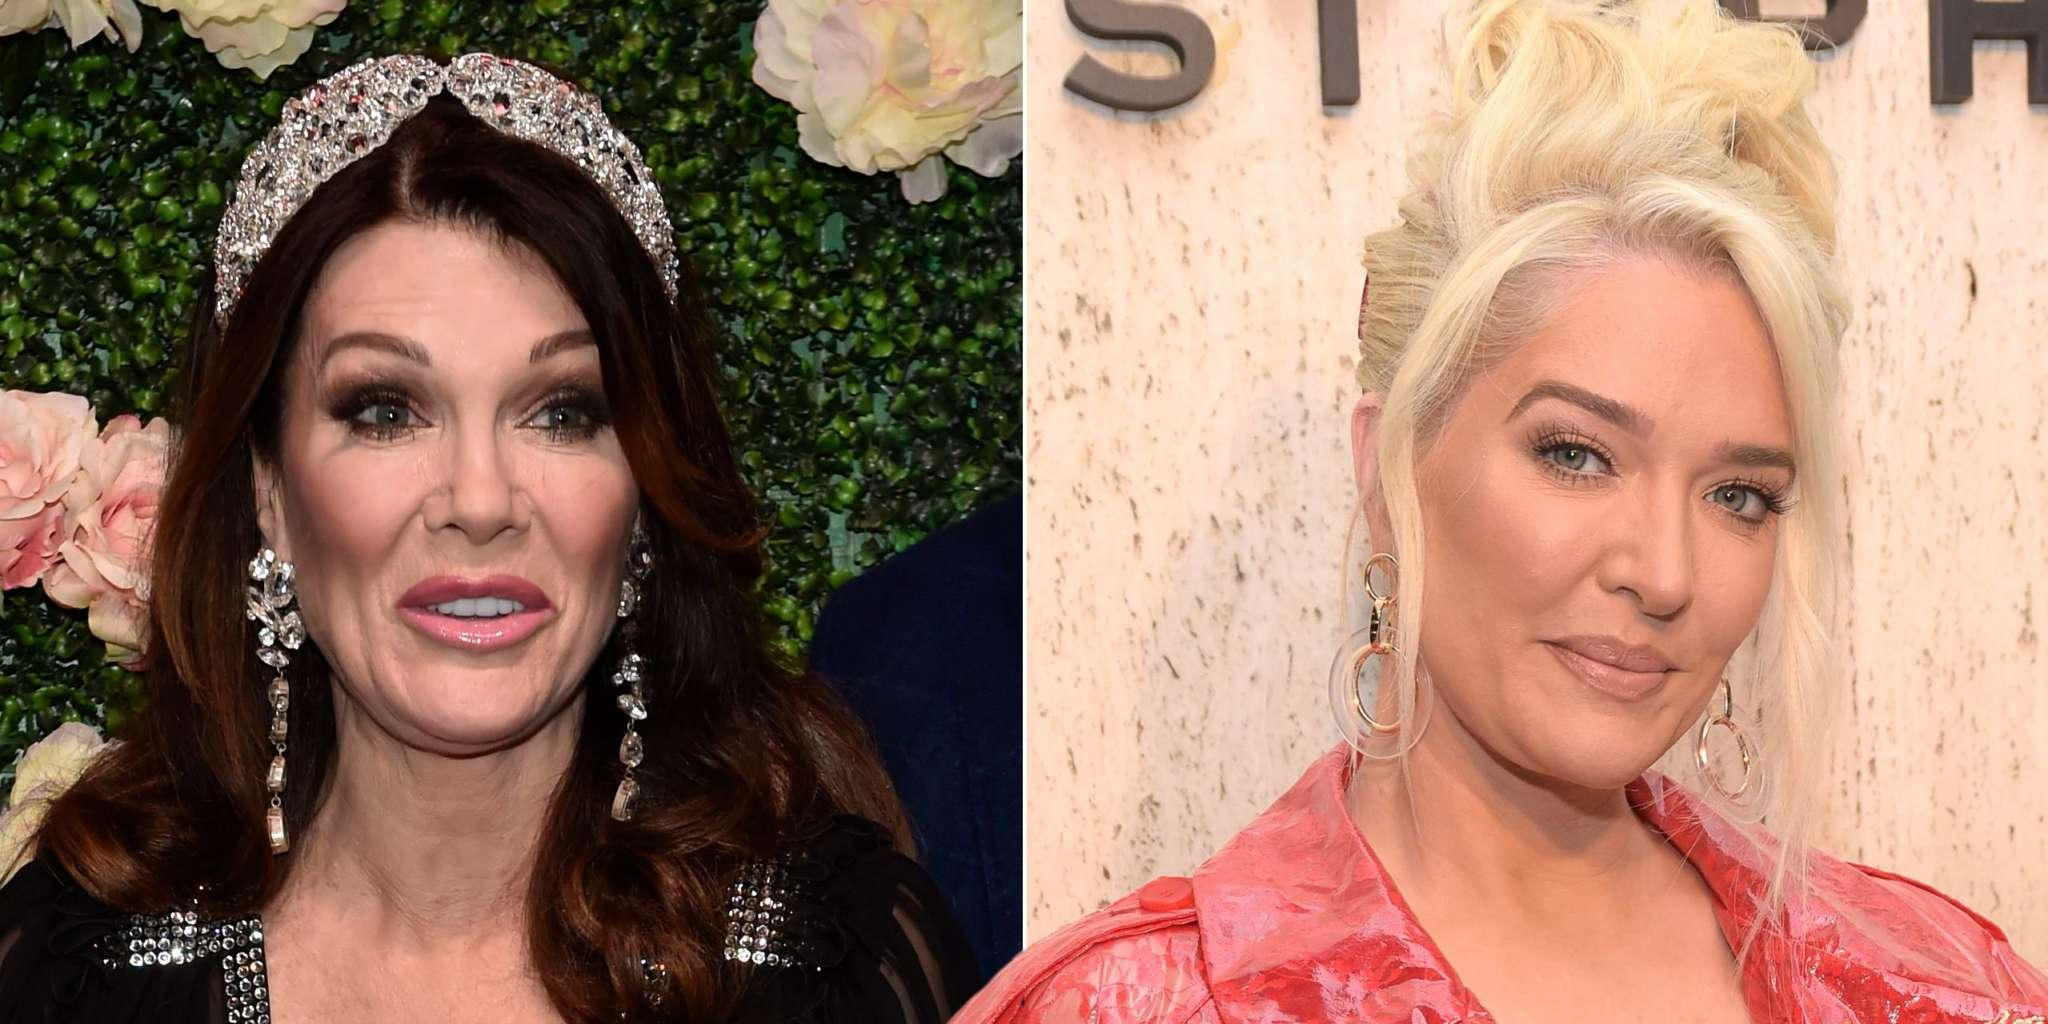 Lisa Vanderpump Says Sorry To LGBT Community: 'I Have Nothing But Respect And Love For Trans People'